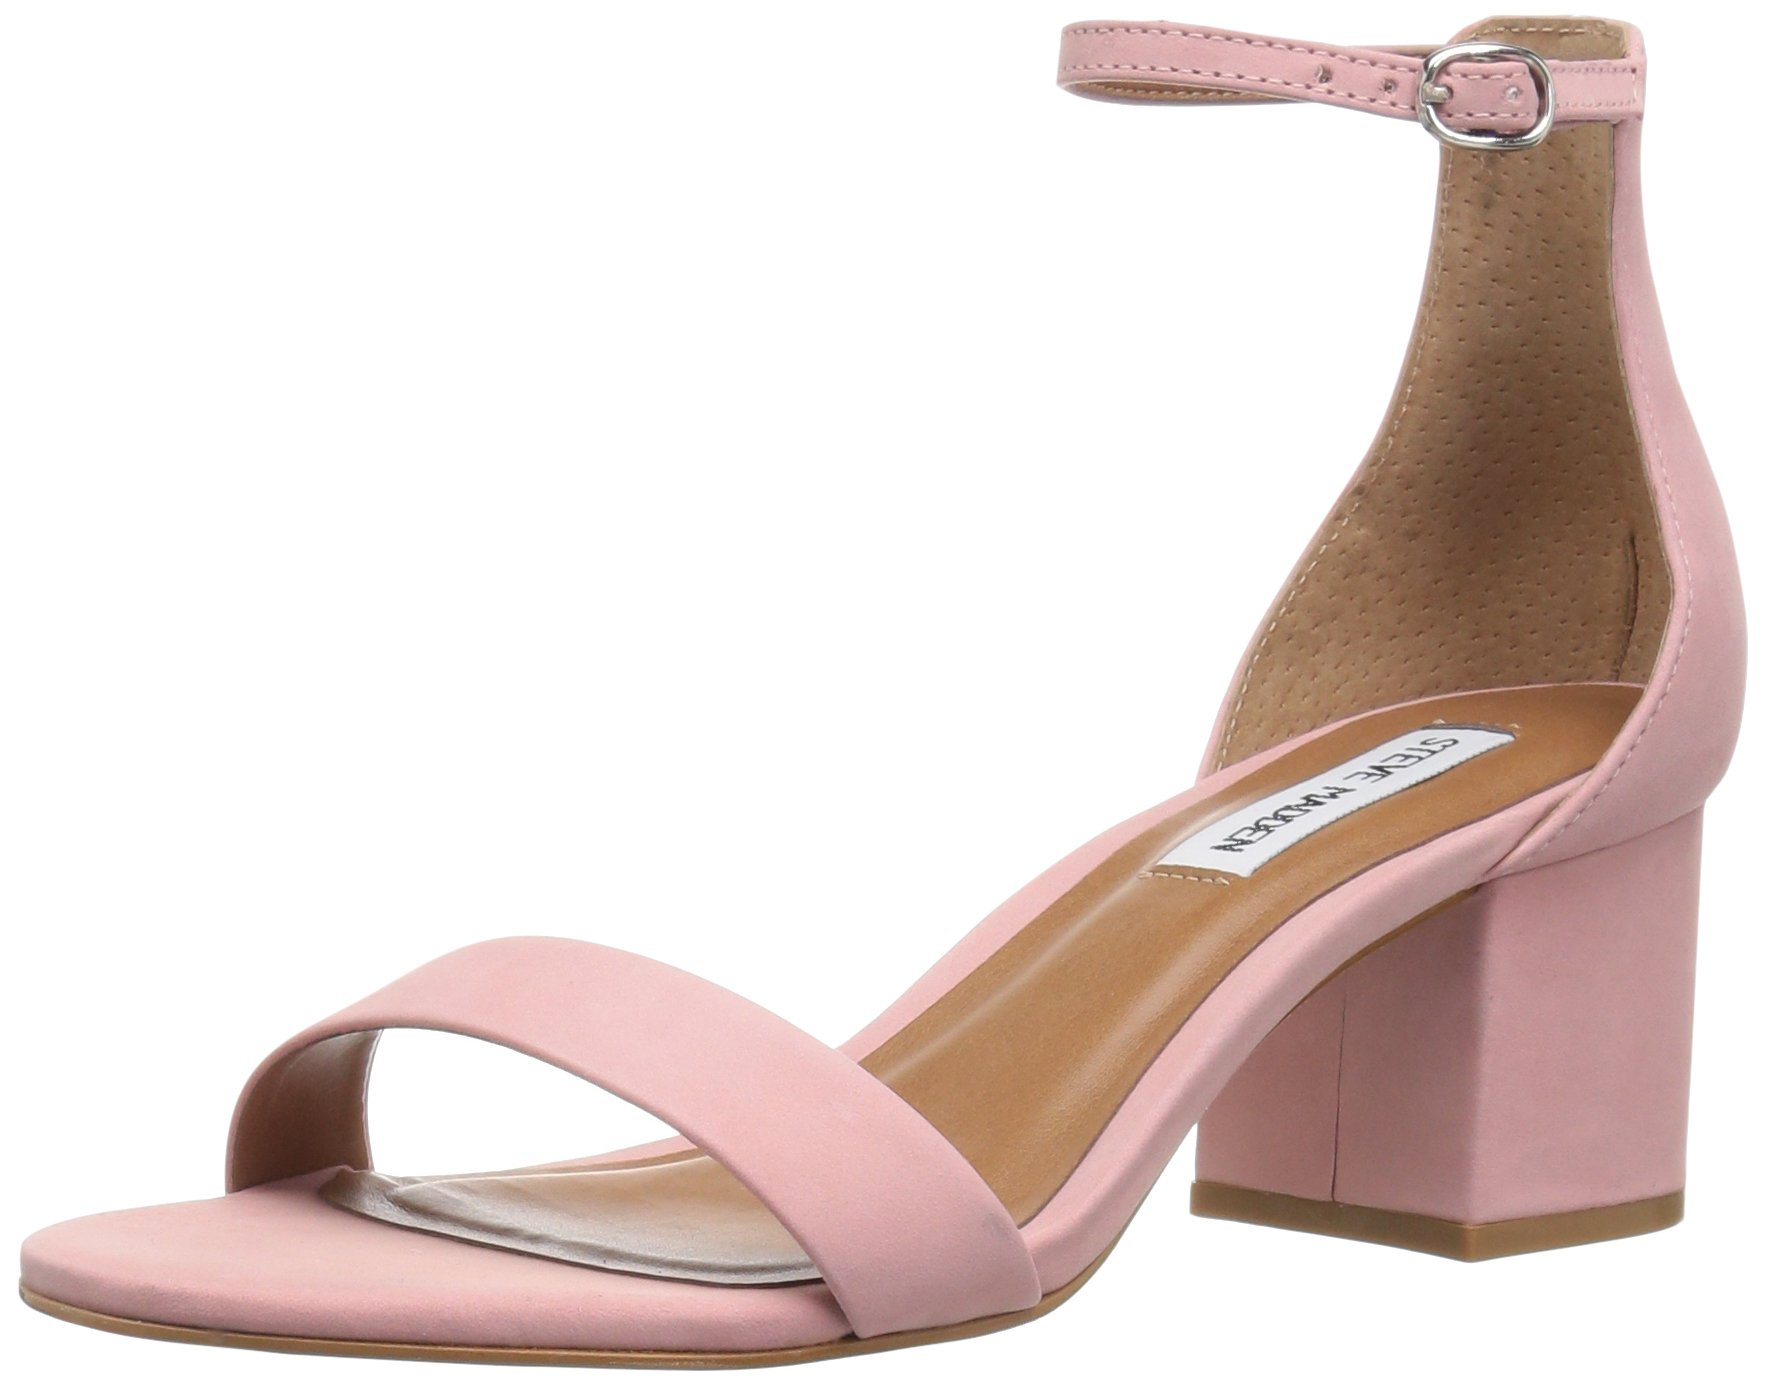 Steve Madden Women's Irenee Dress Sandal, Light Pink, 8 M US